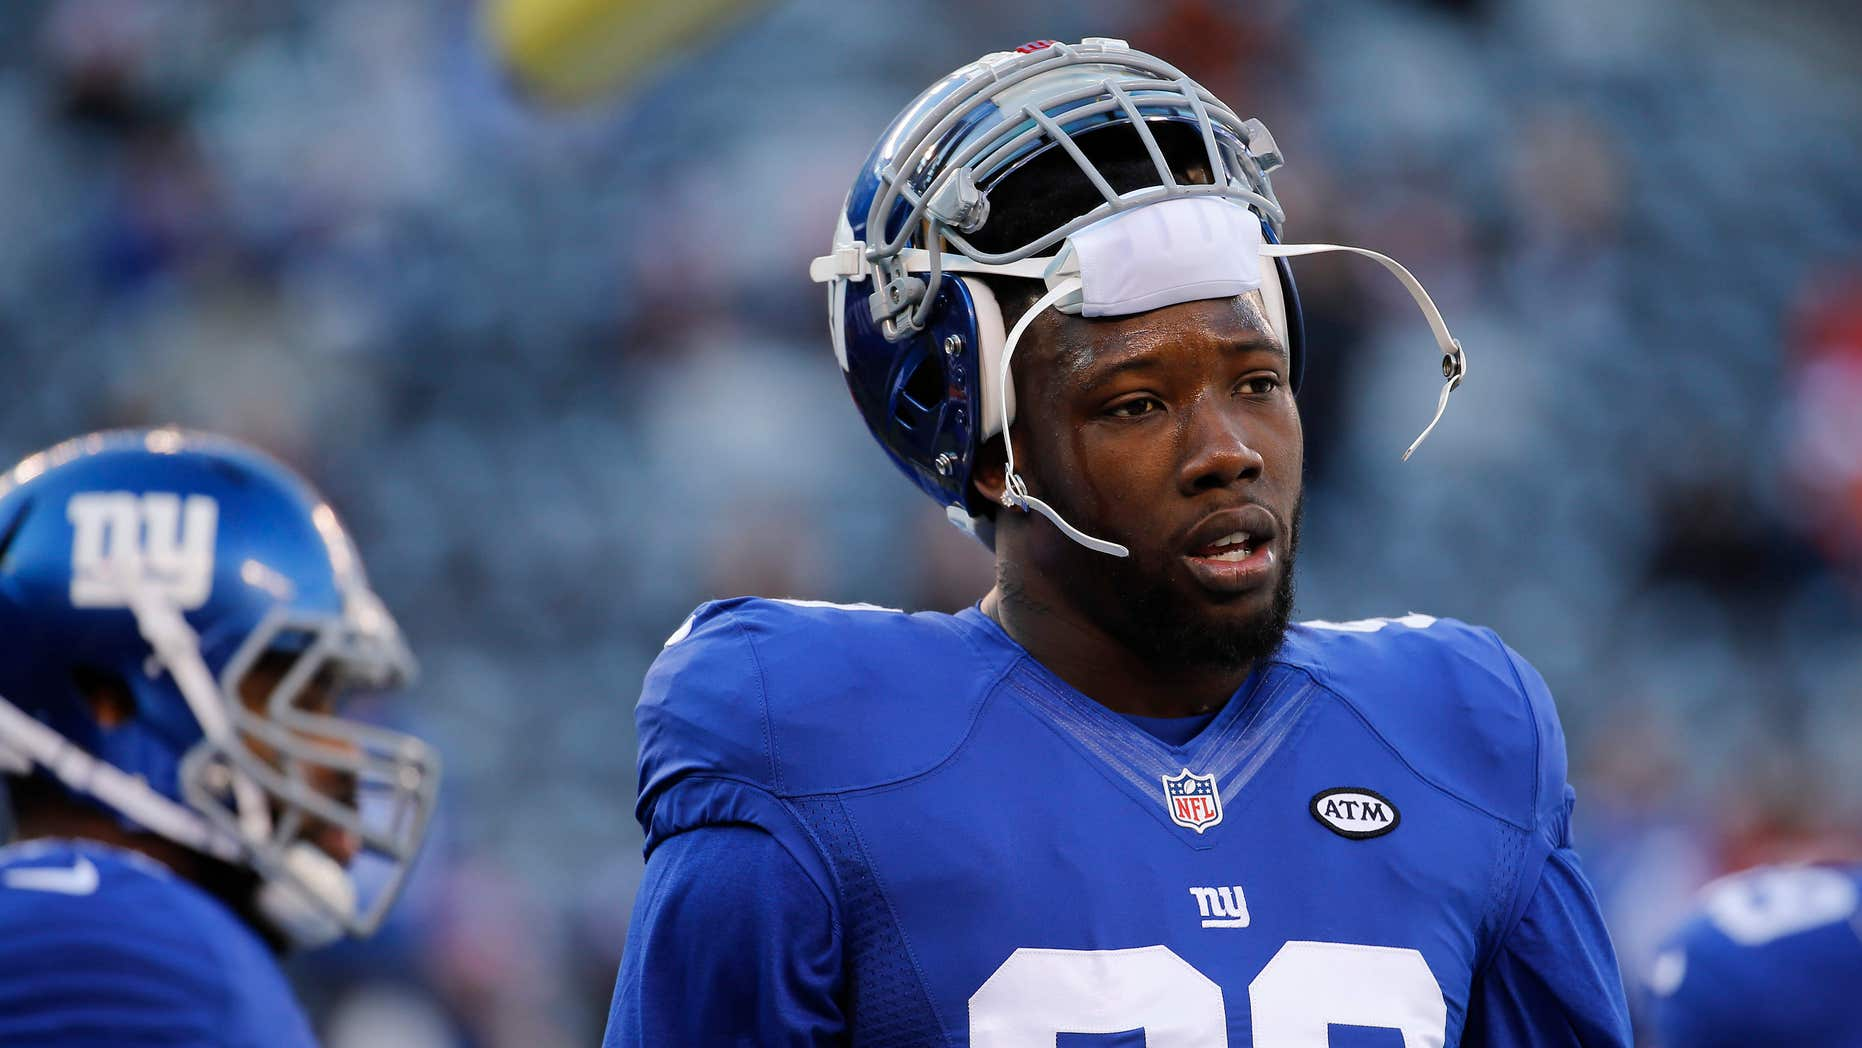 FILE - In this Jan. 3, 2016, file photo, New York Giants defensive end Jason Pierre-Paul (90) warms up before playing against the Philadelphia Eagles in an NFL football game in East Rutherford, N.J.